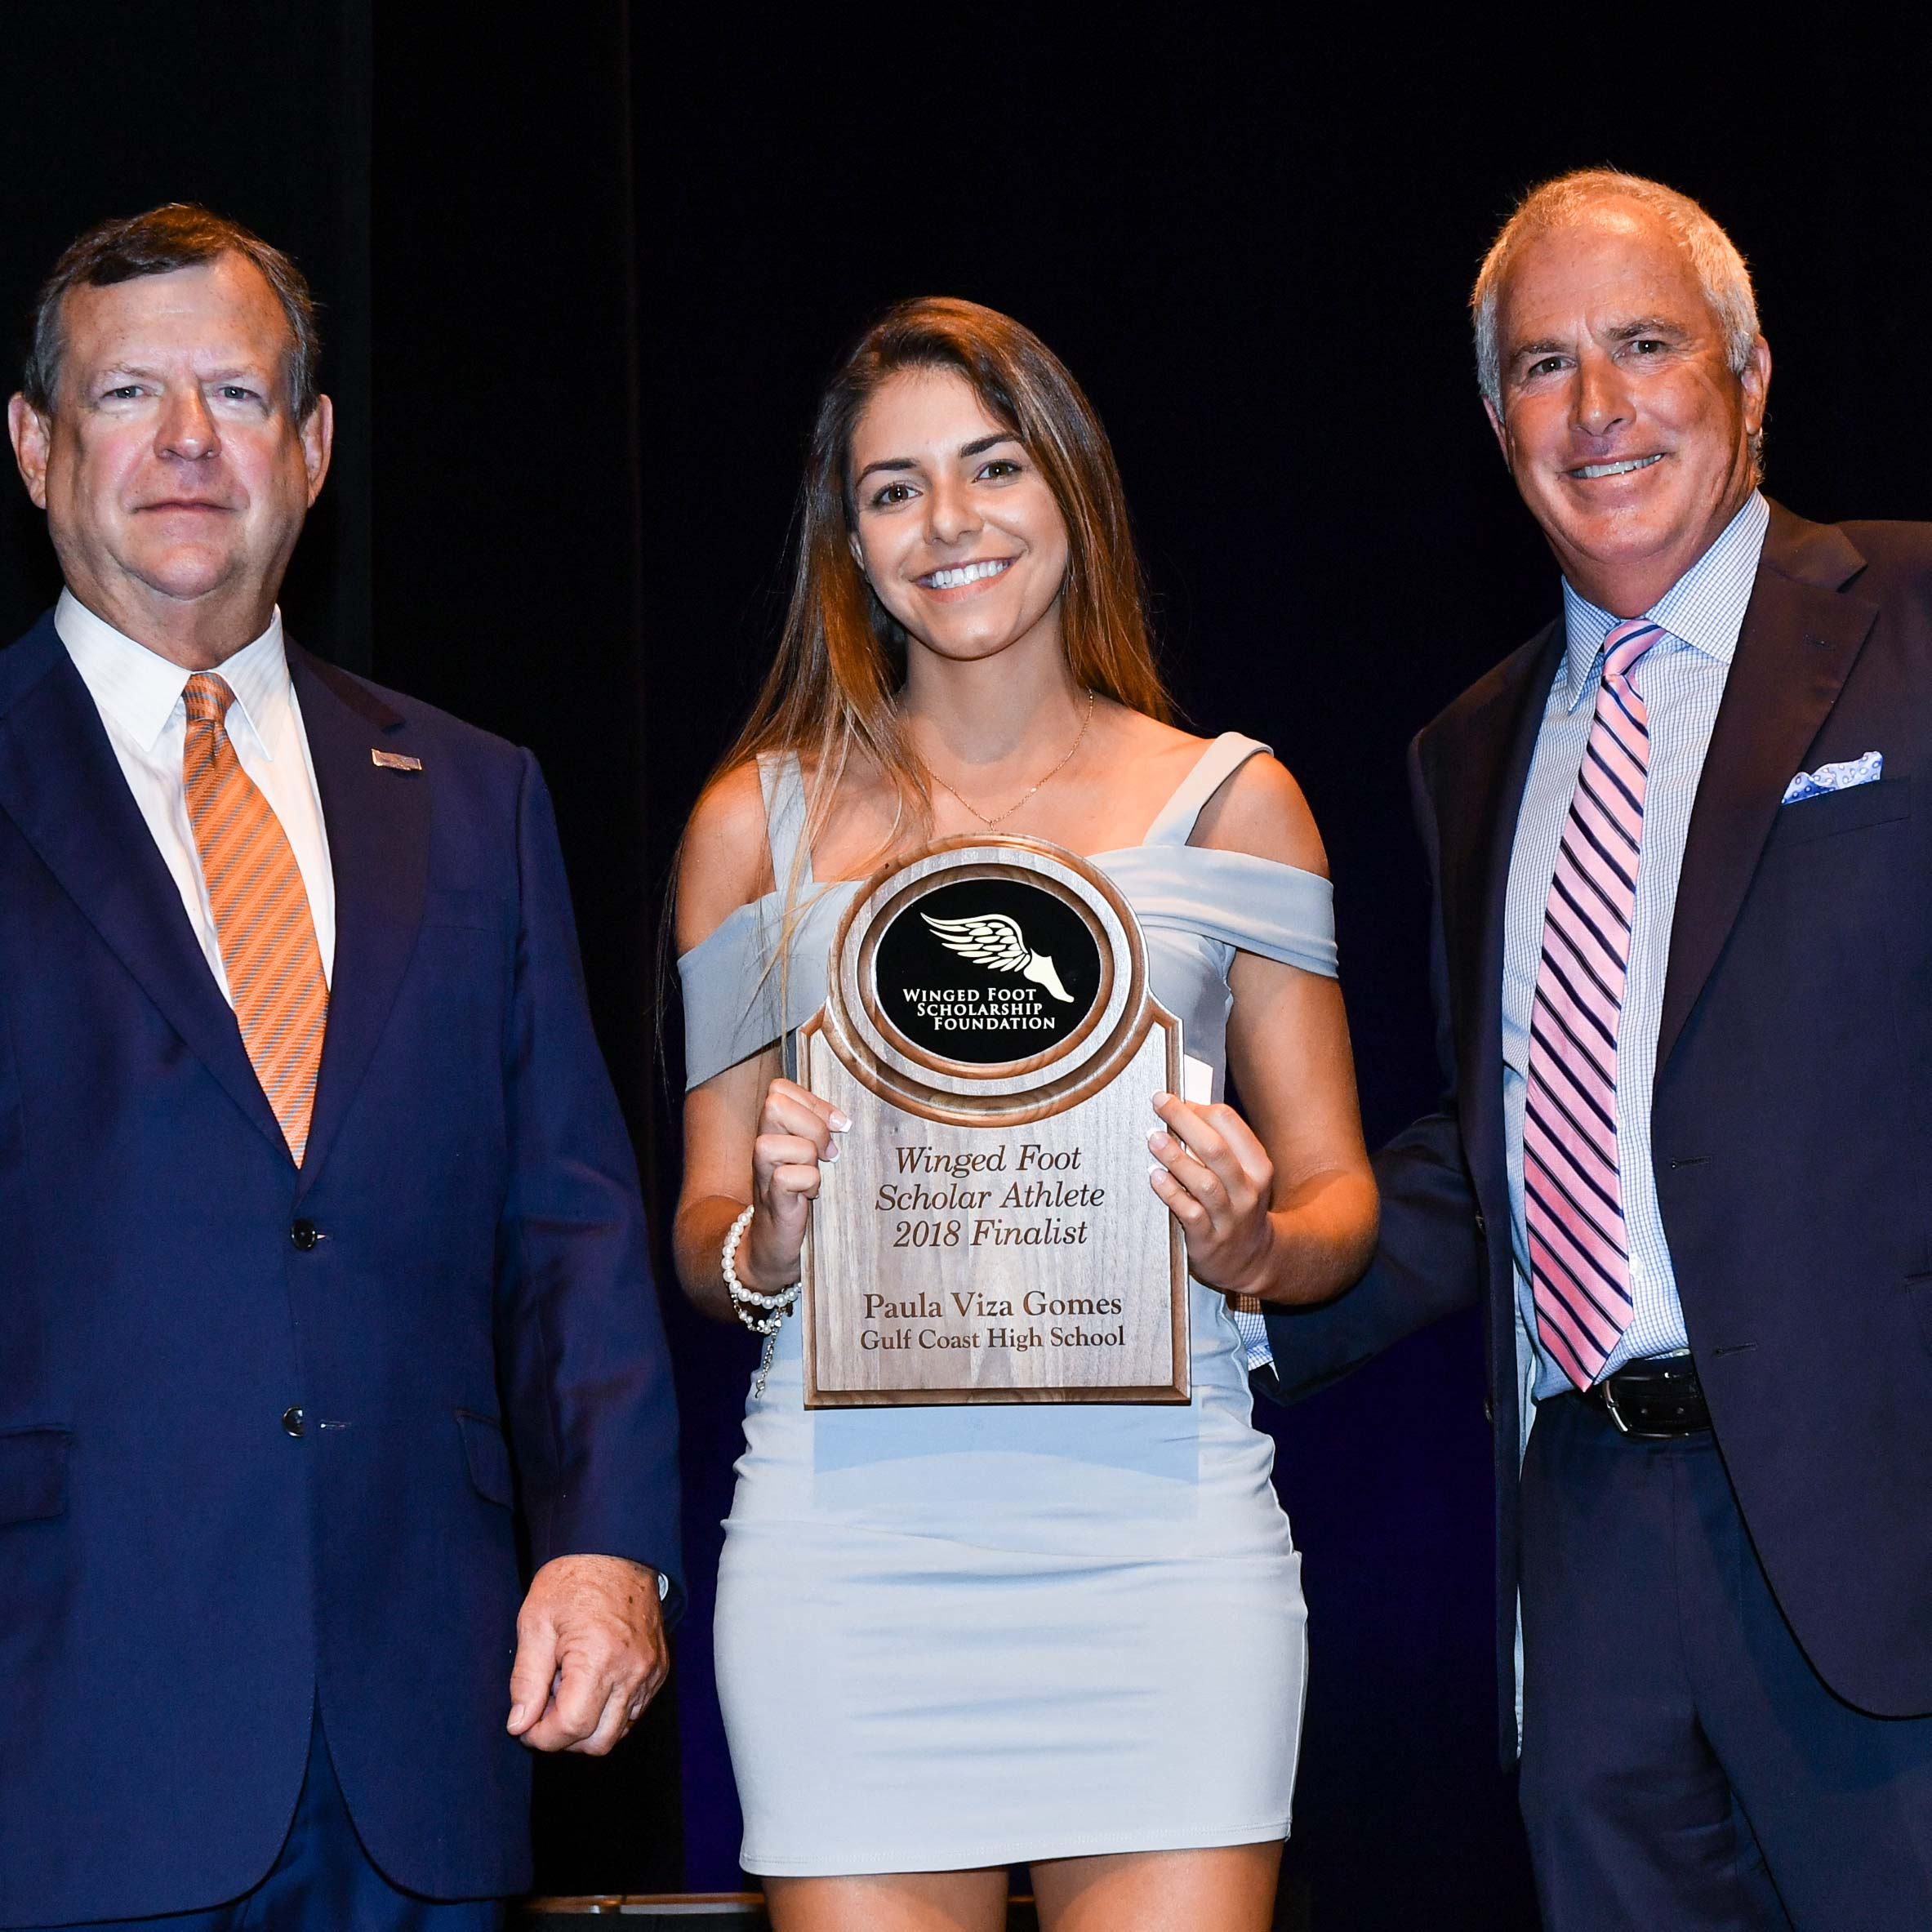 29th Annual Winged Foot Scholar-Athlete Award